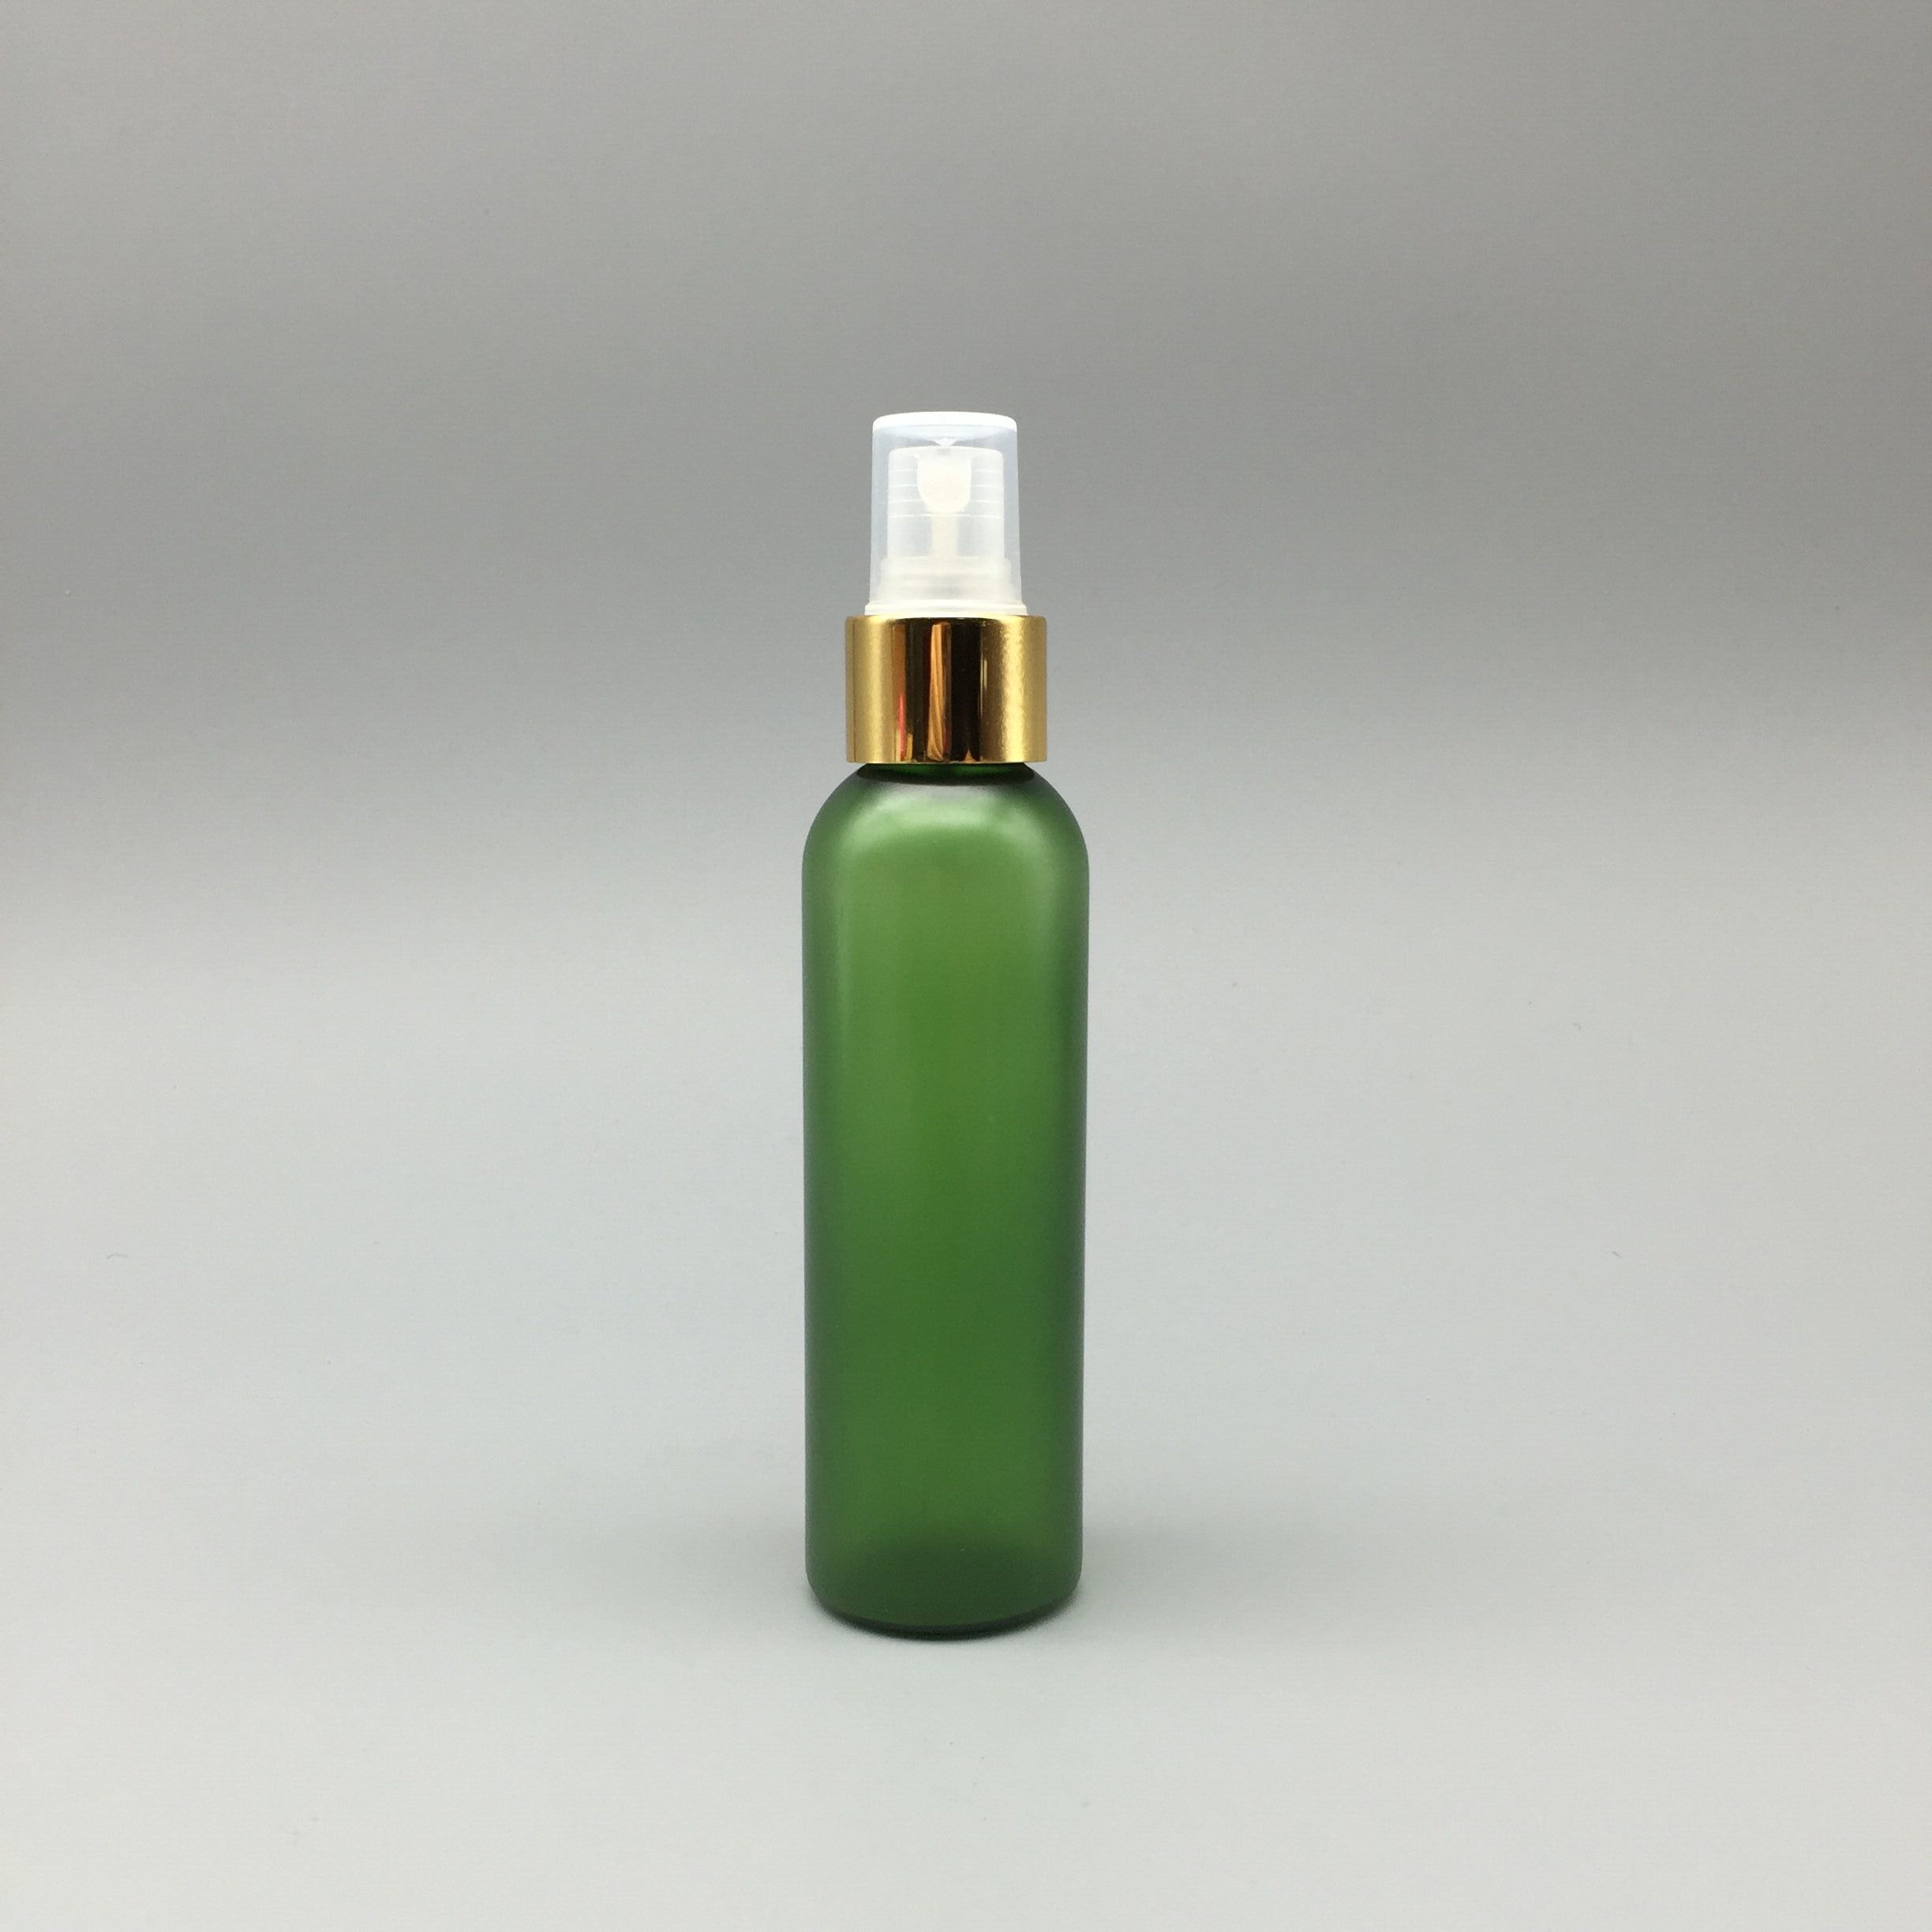 120ml Pet Bottle in Green with Sprayer for Skin Care